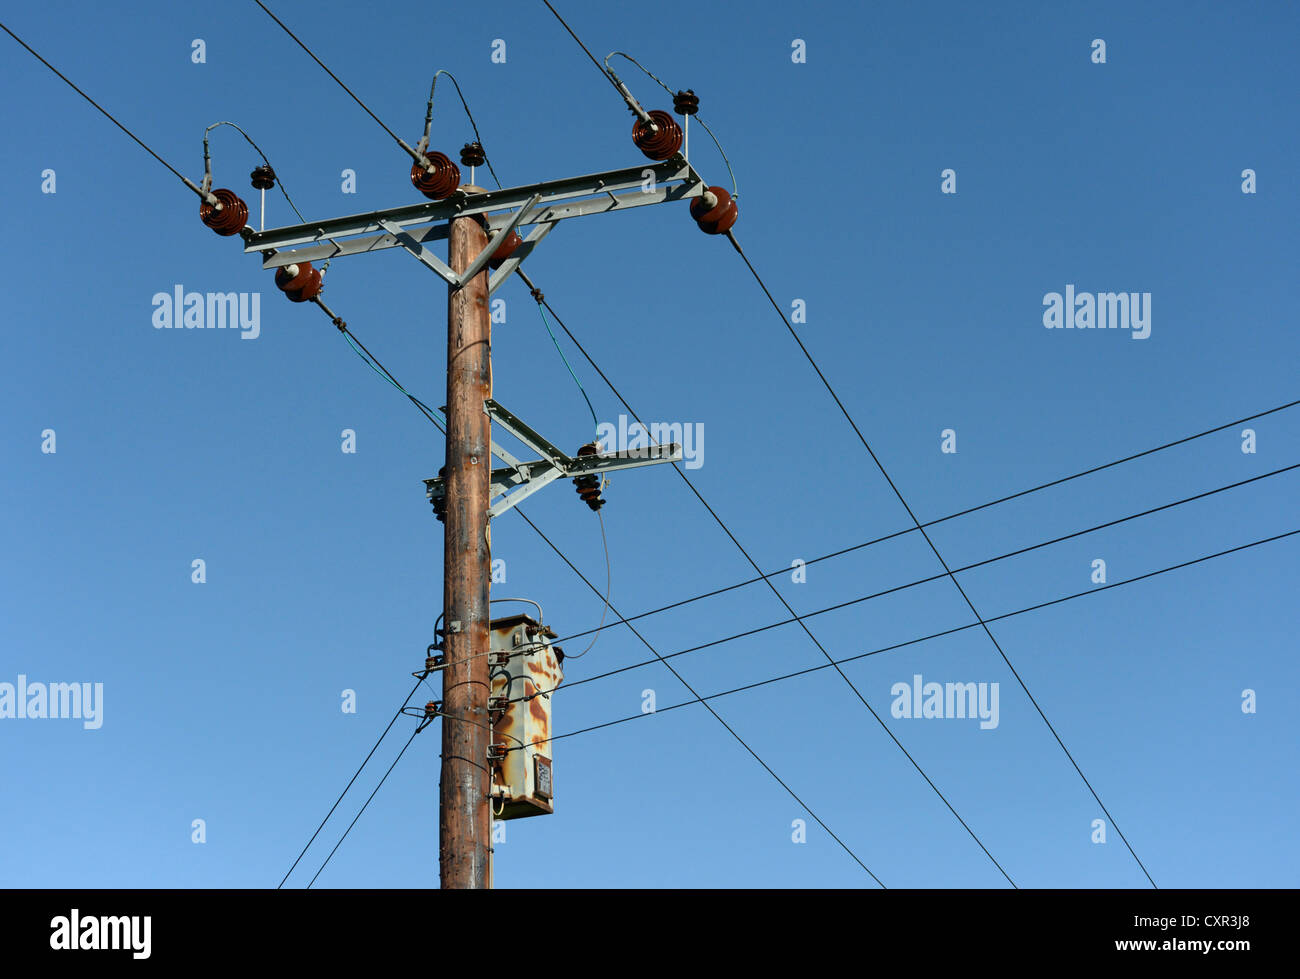 11-kv-overhead-electrical-power-lines-and-transformer-on-wooden-pole-CXR3J8.jpg